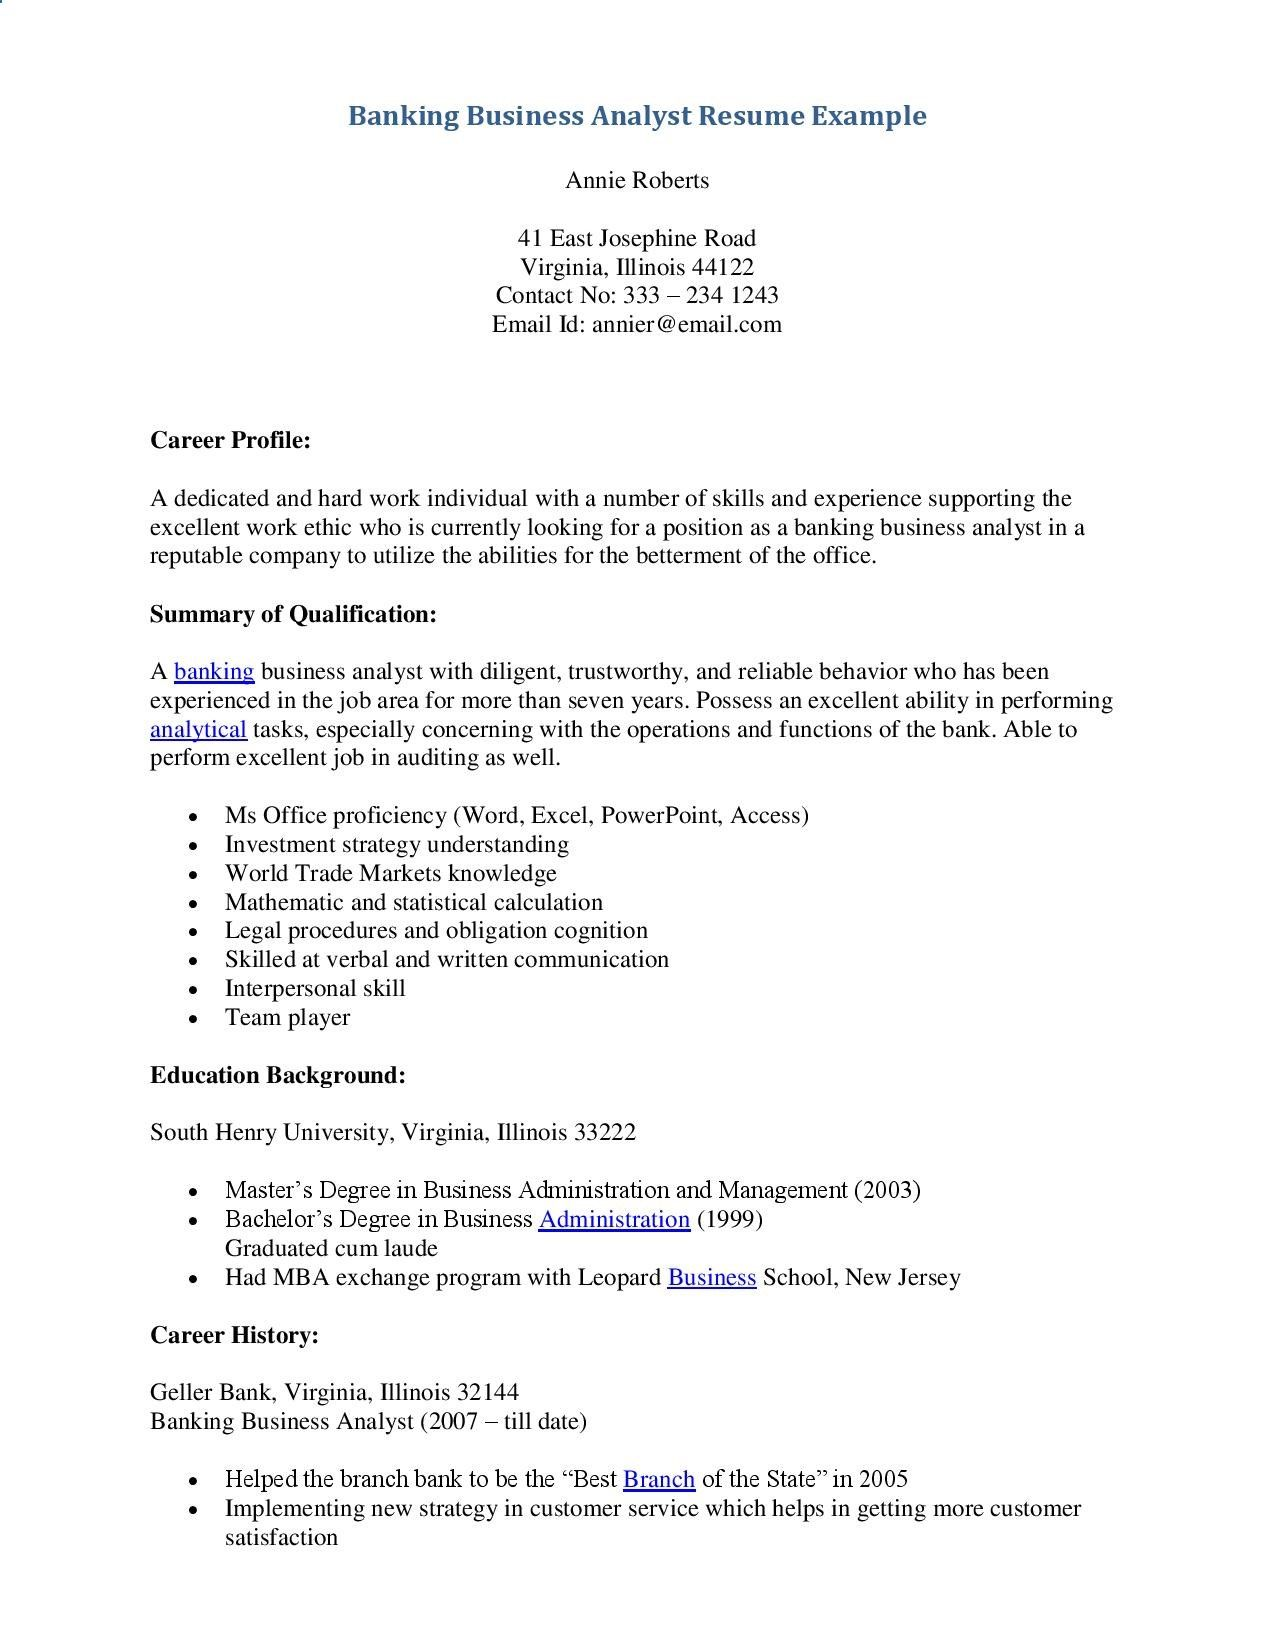 Delightful Banking Business Analyst Resume   Topresume.info/.